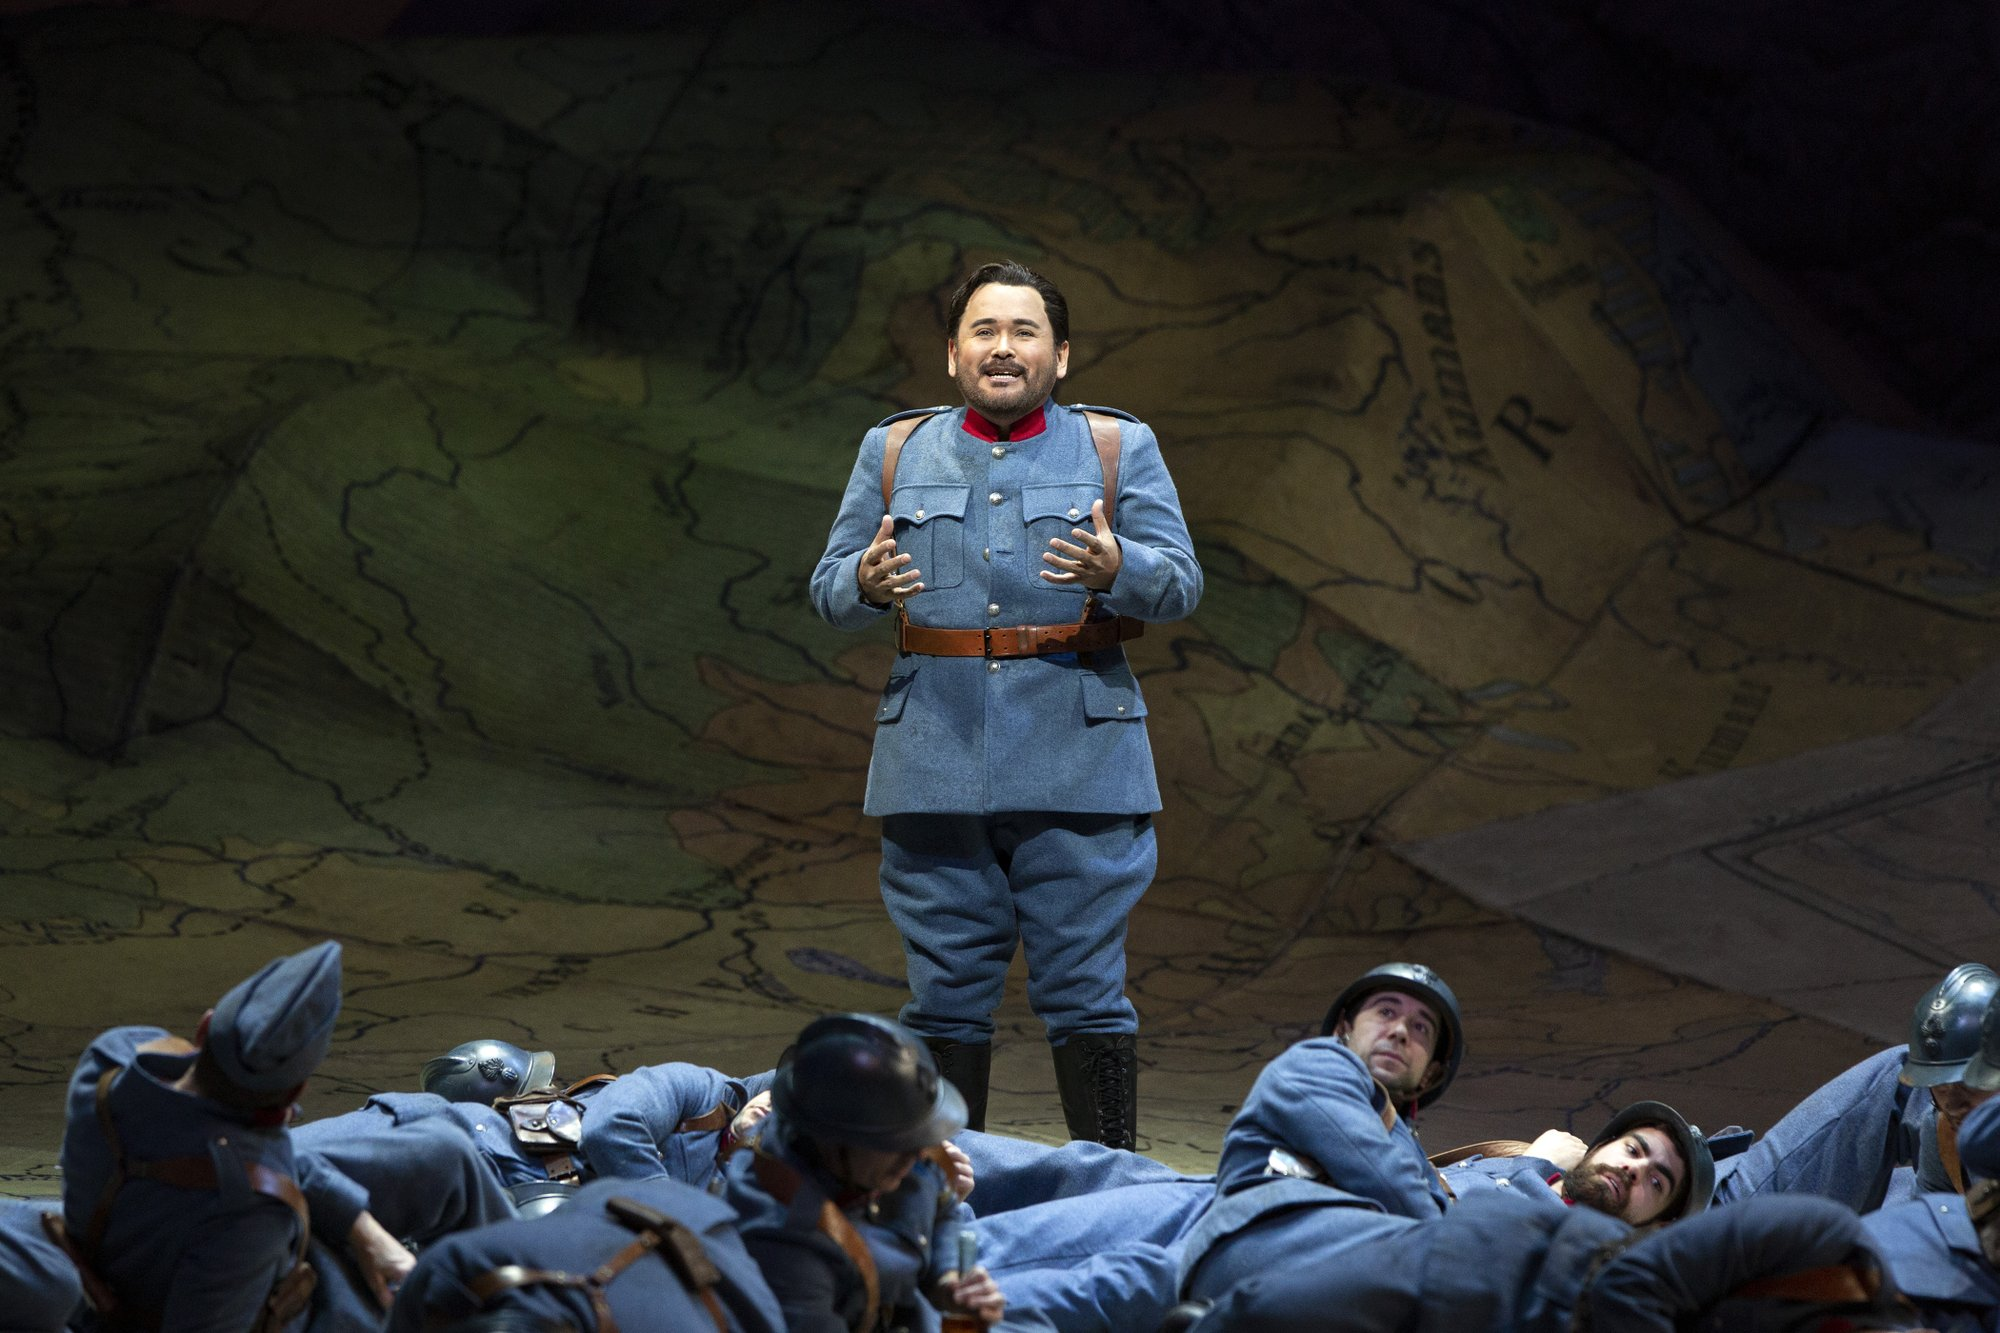 Tenor on top of the high C's in Donizetti opera